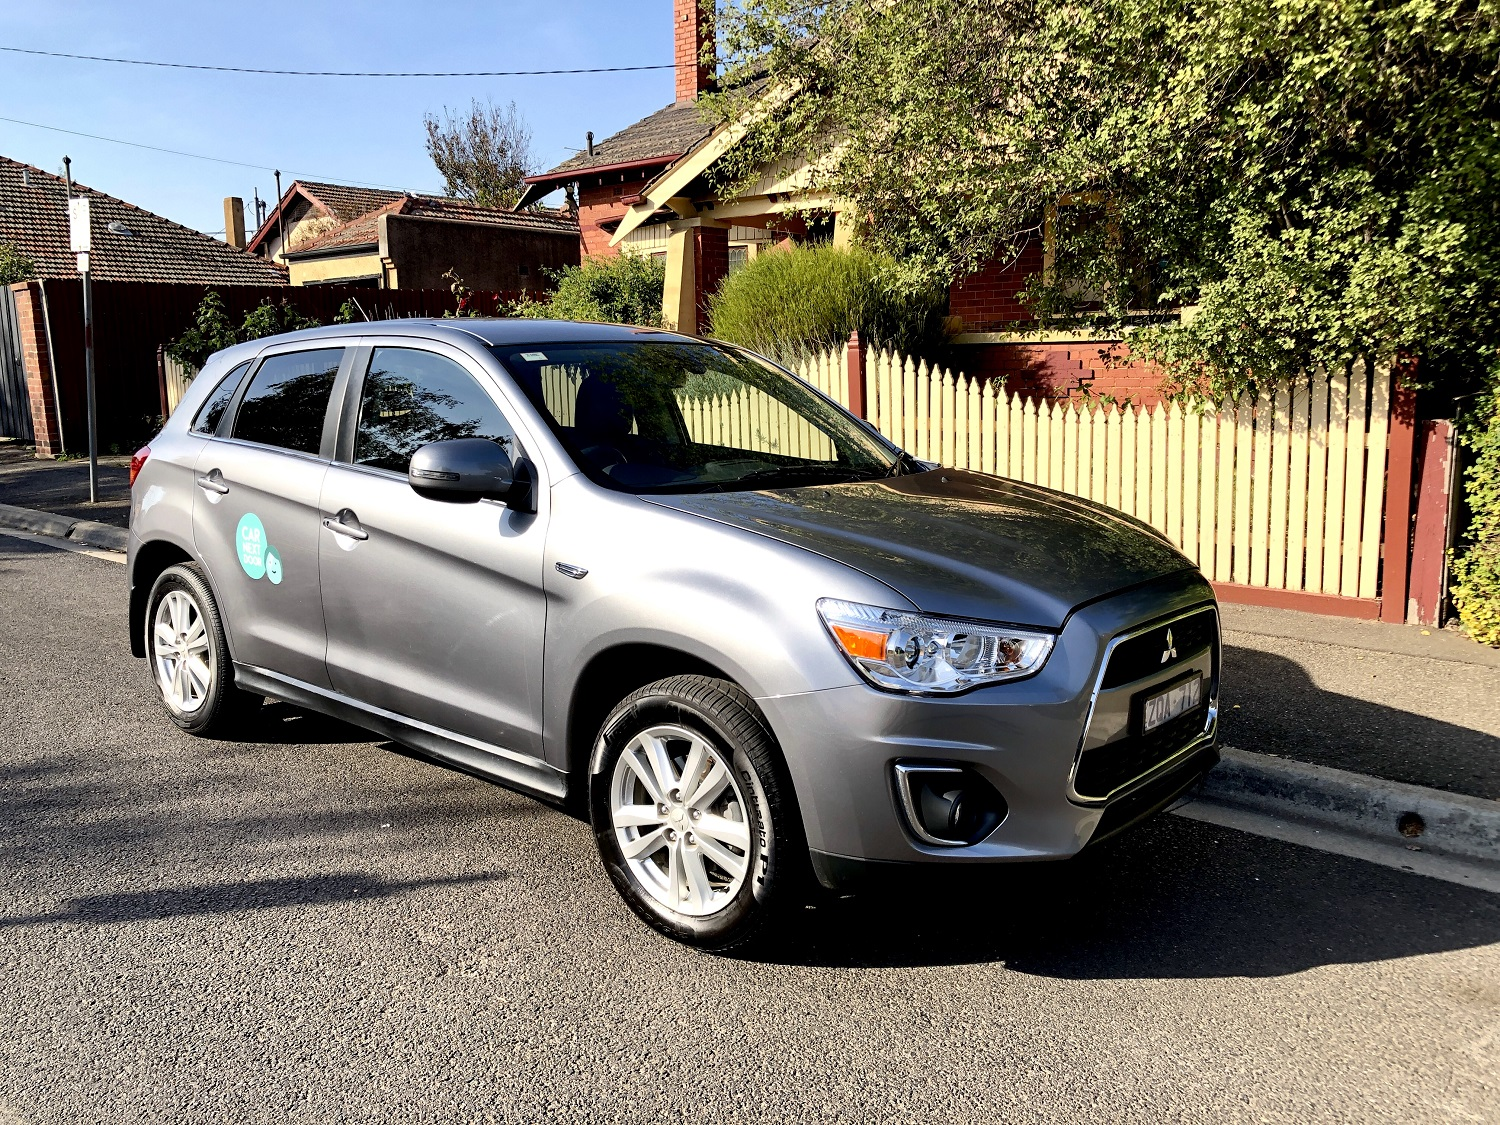 Picture of Azri's 2013 Mitsubishi ASX